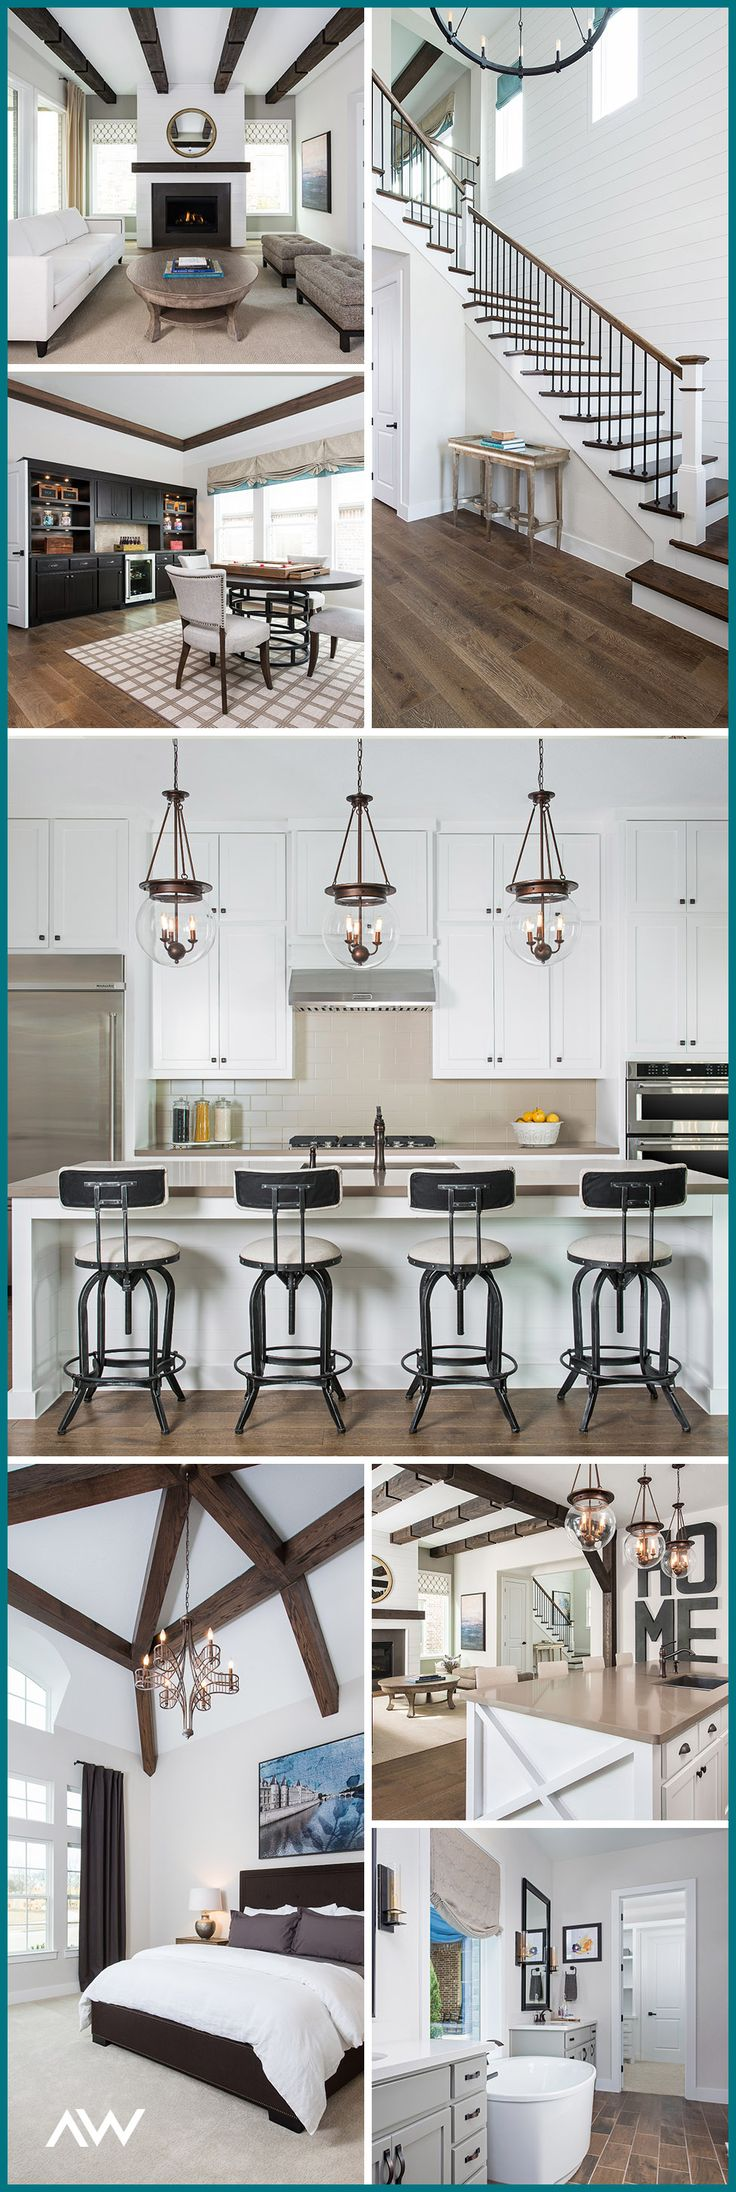 96 best Dallas Homes & Lifestyle images on Pinterest | Dallas ...